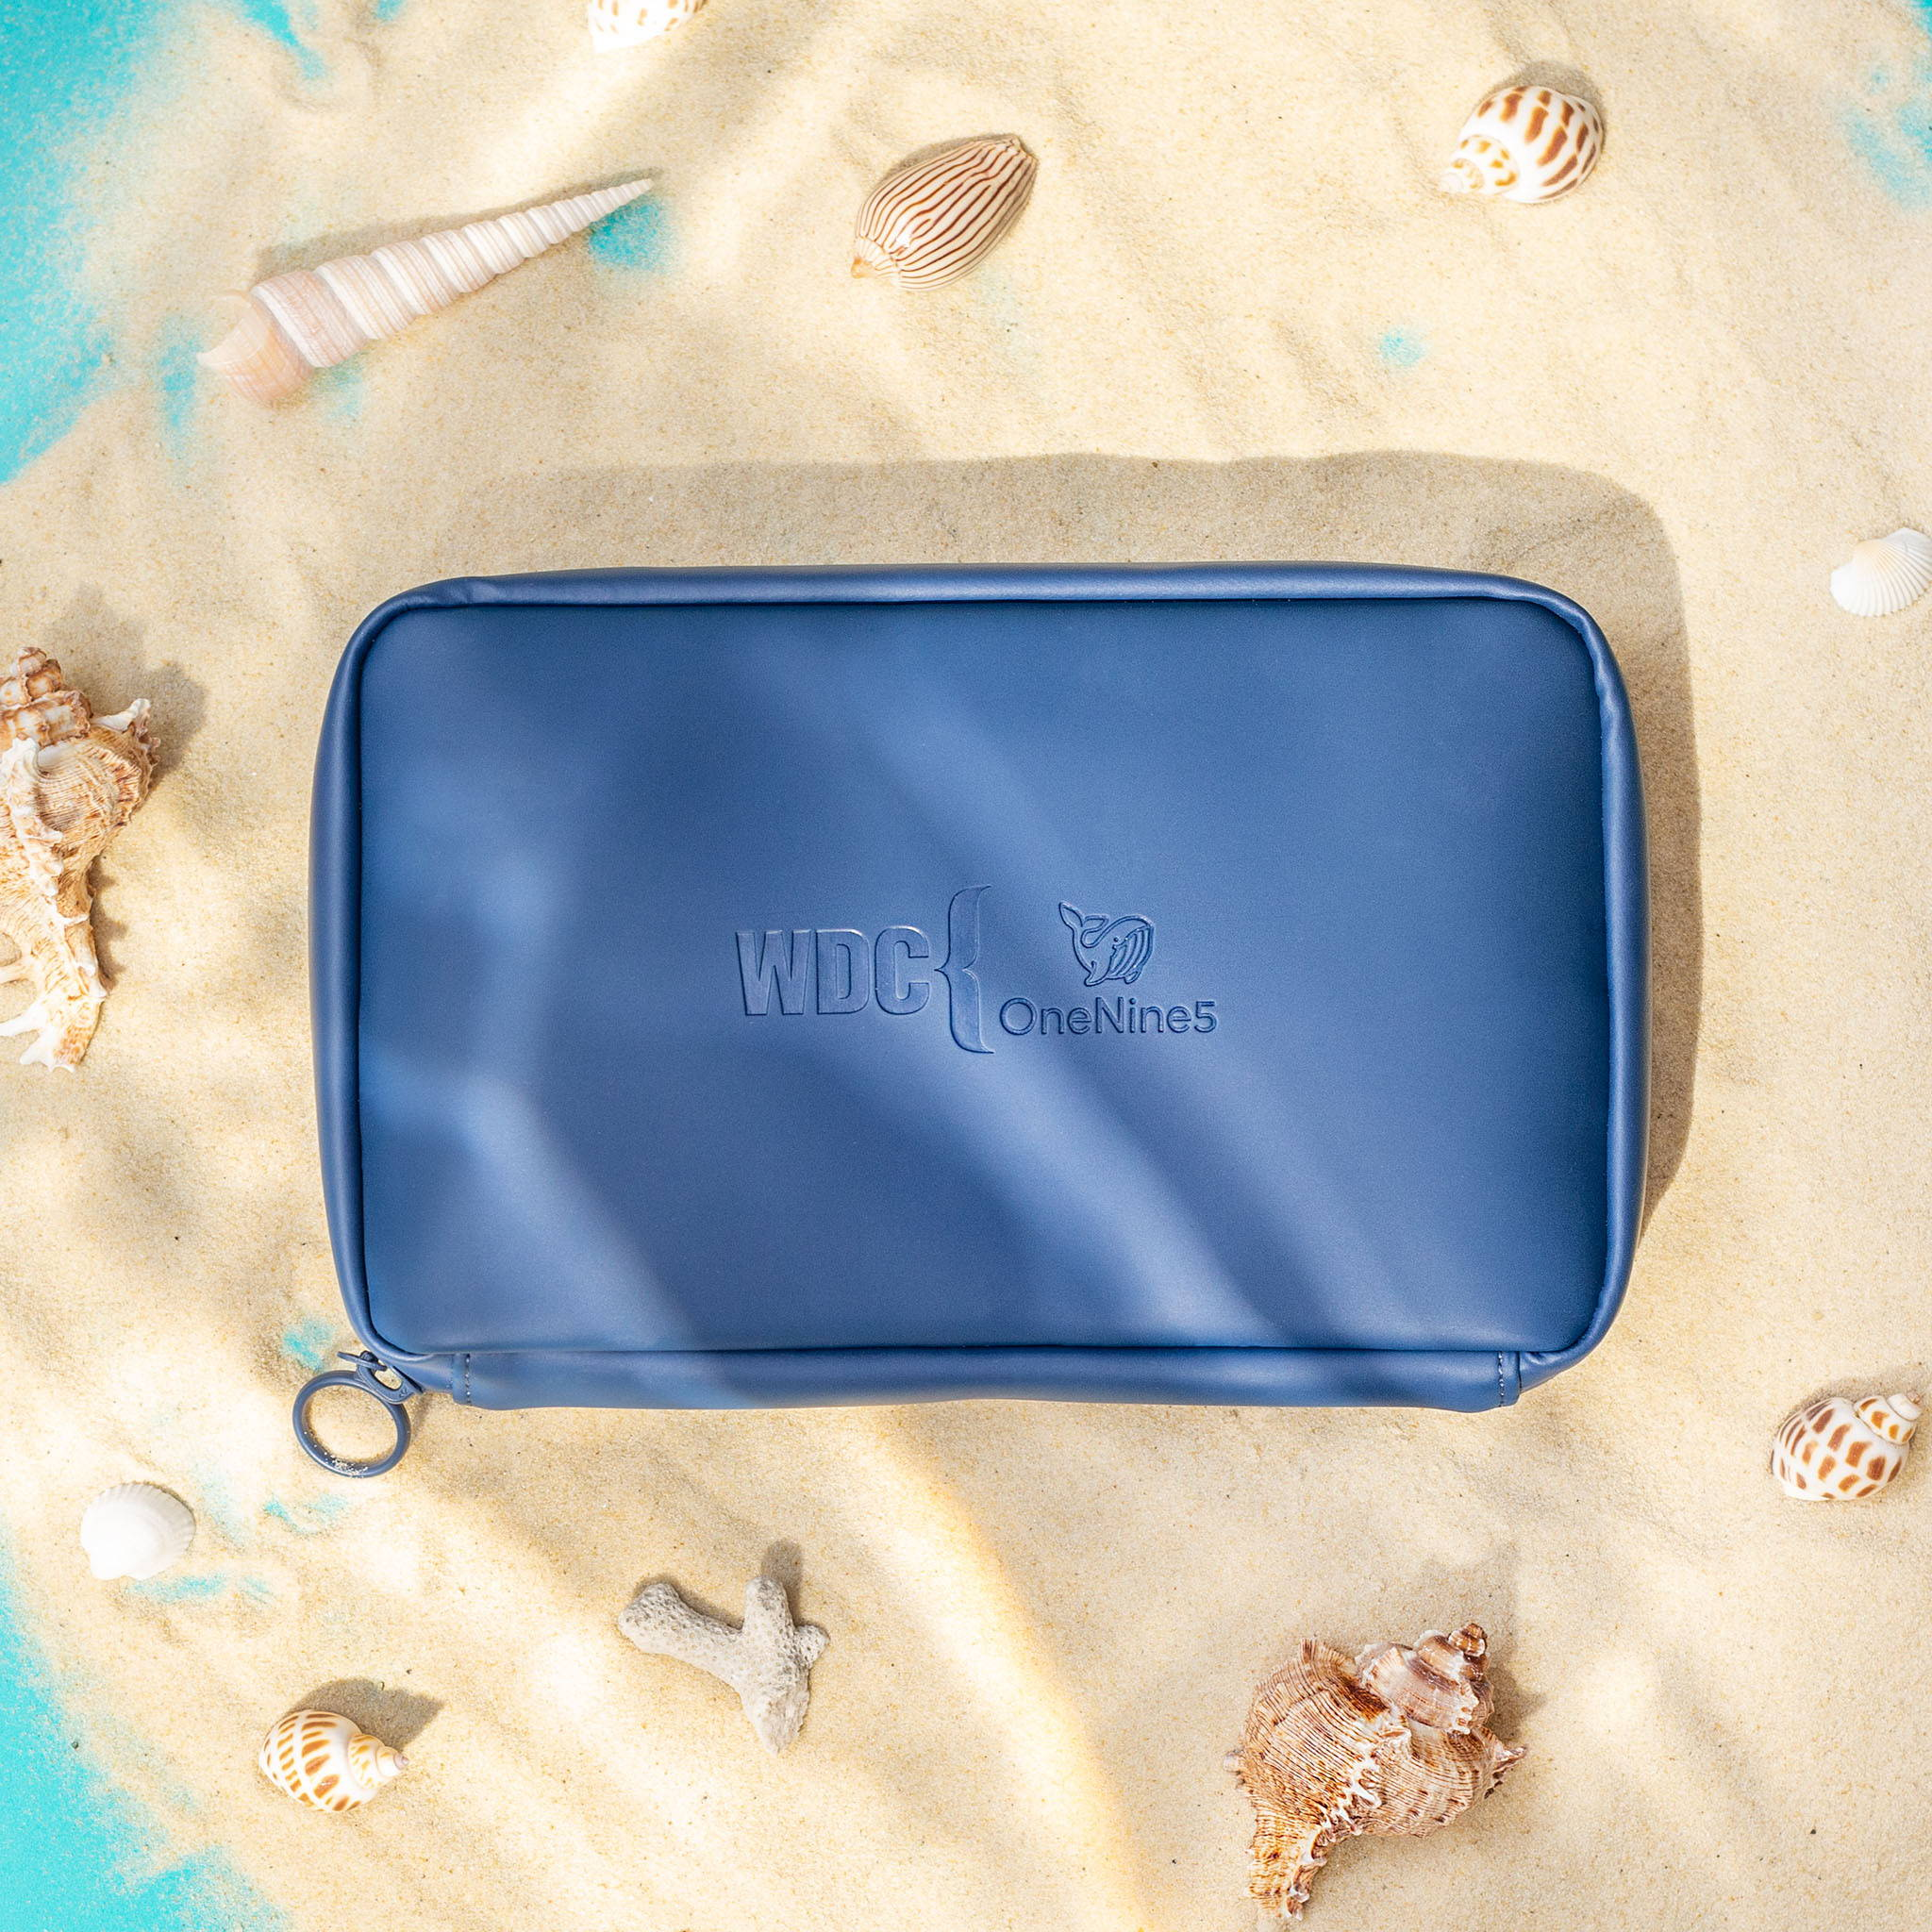 Birdseye image of the limited edition OneNine5 x WDC Eco Essentials Pouch. The blue pouch is surrounded by golden sand and shells to give a nautical feel.